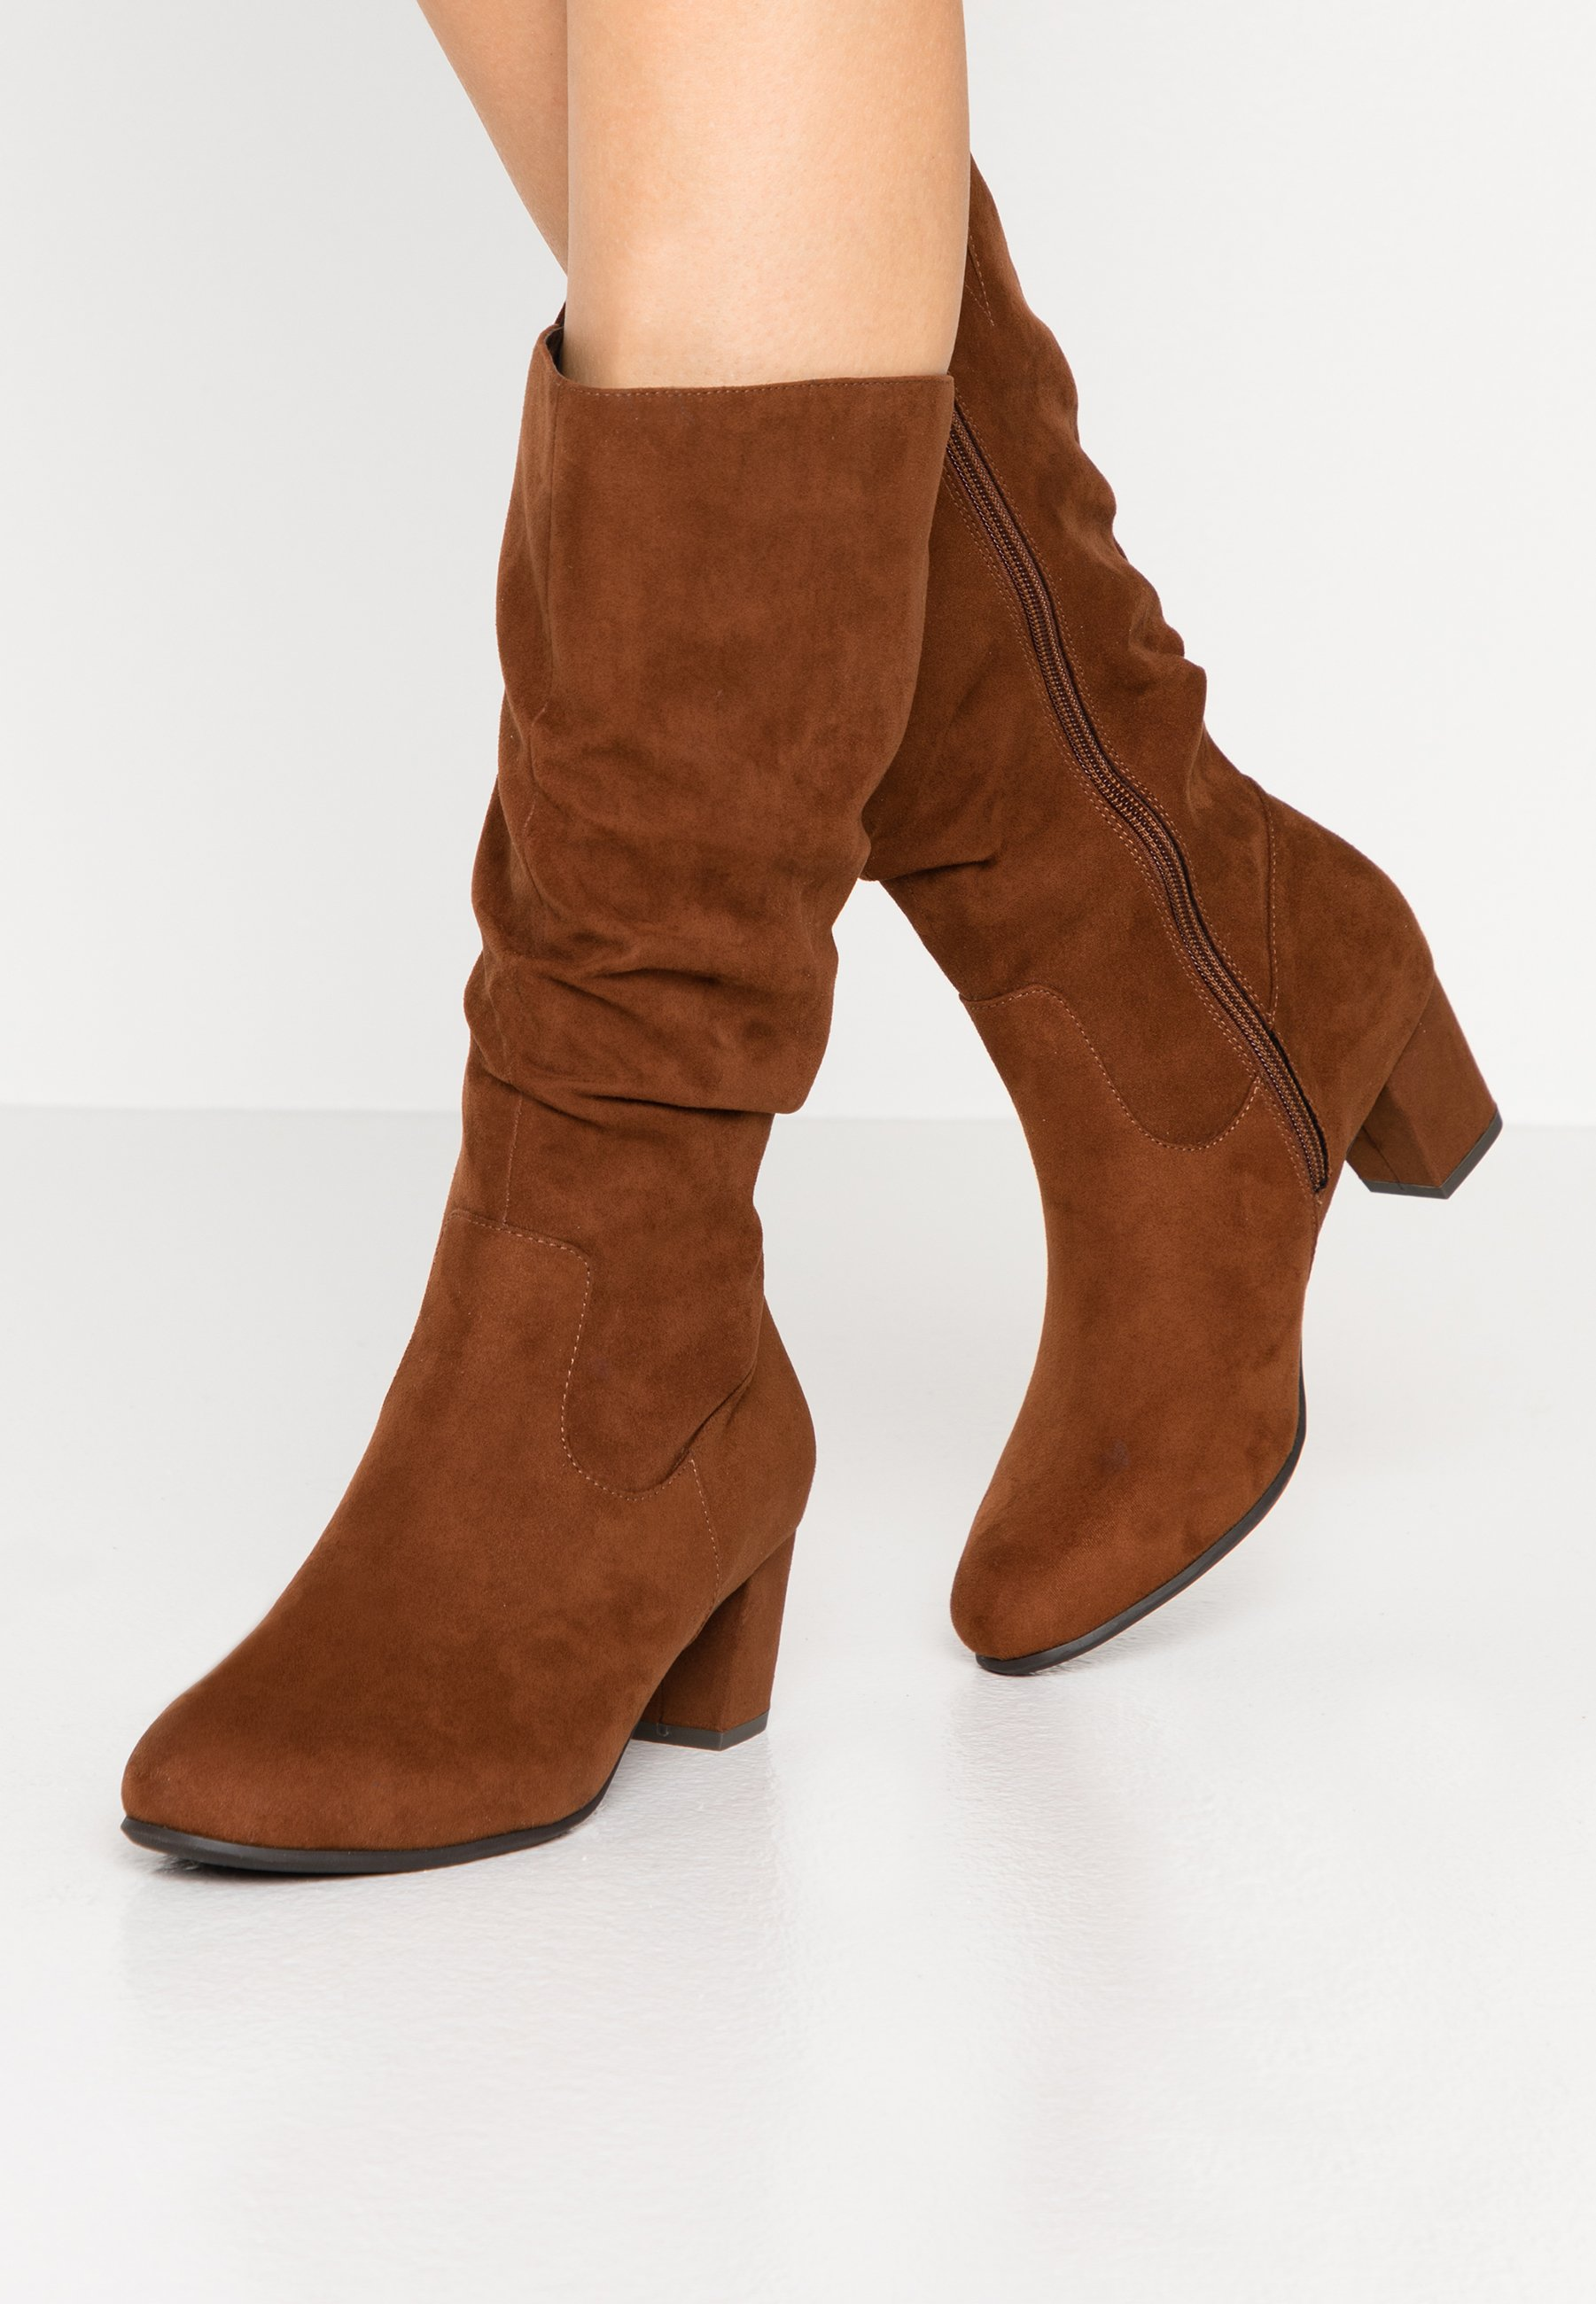 Classic Cheapest Jana Boots - chestnut | women's shoes 2020 BPNG5